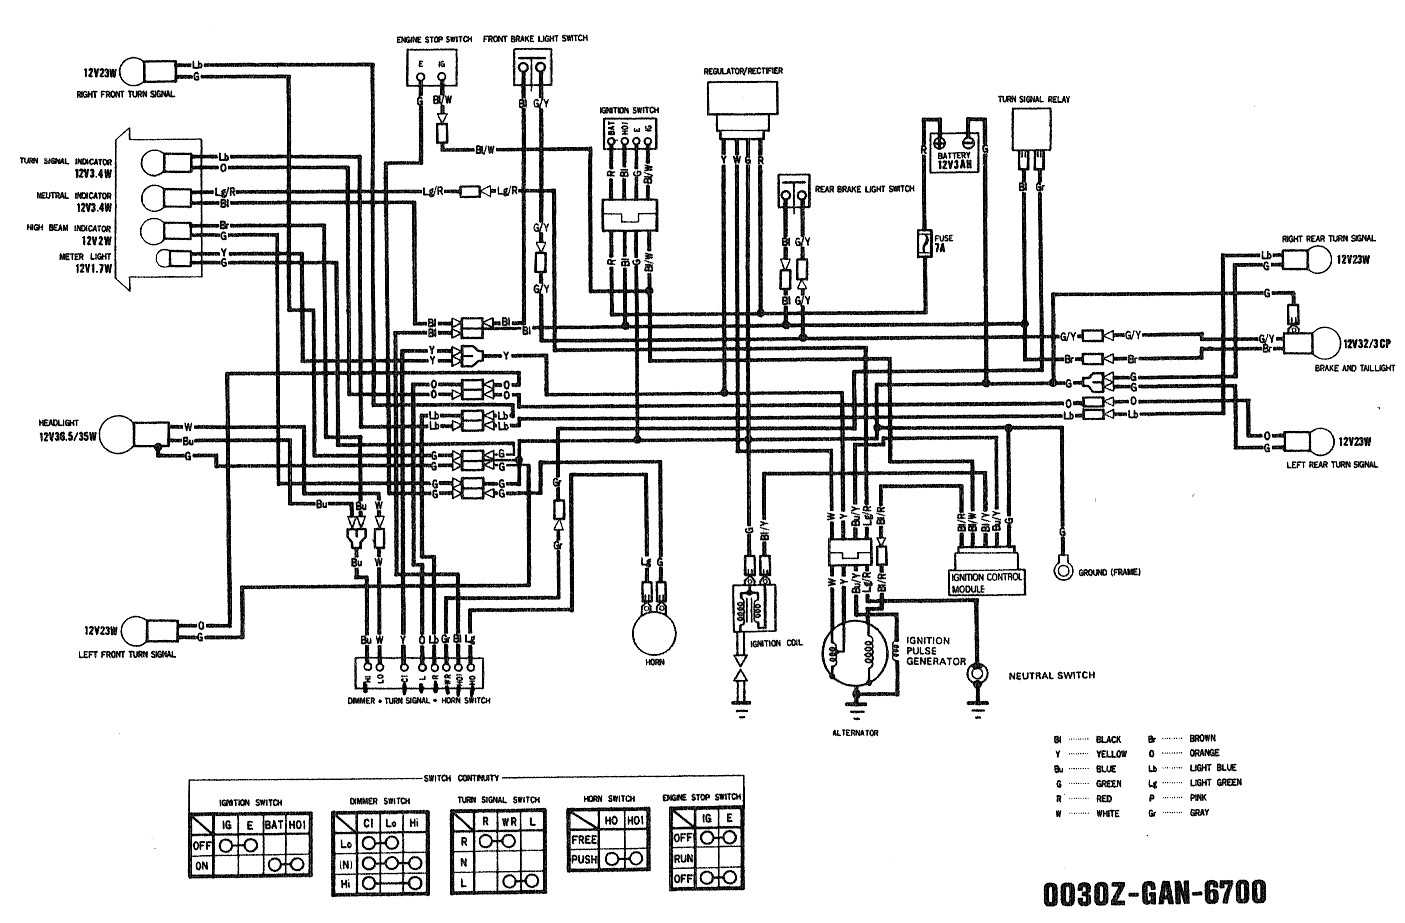 1978 Honda Xl75 Wiring Diagram